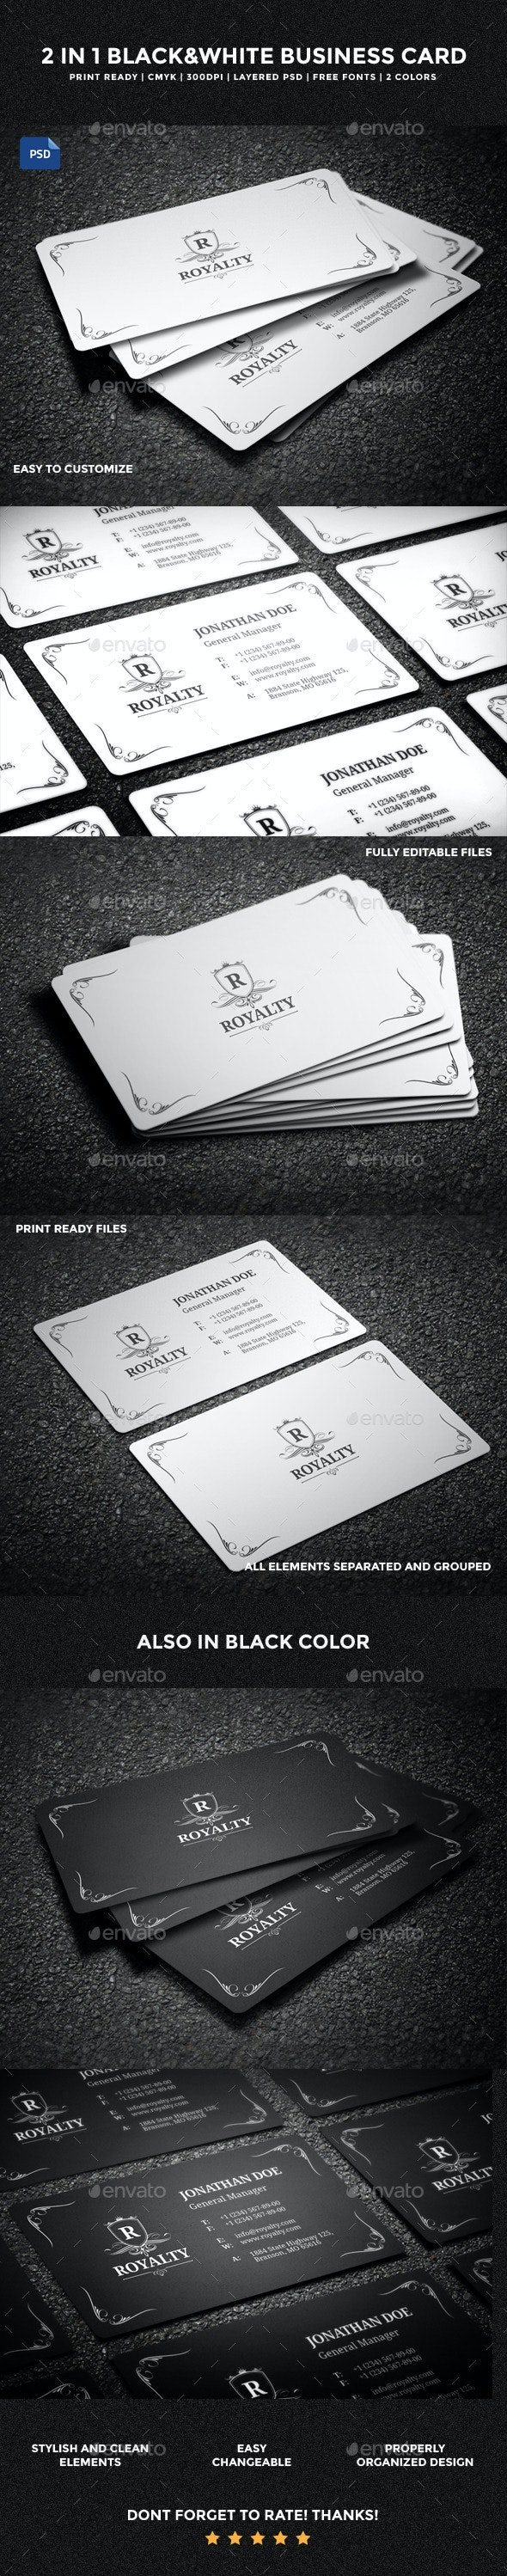 2 in 1 Black & White Business Card - 58 - Retro/Vintage Business Cards